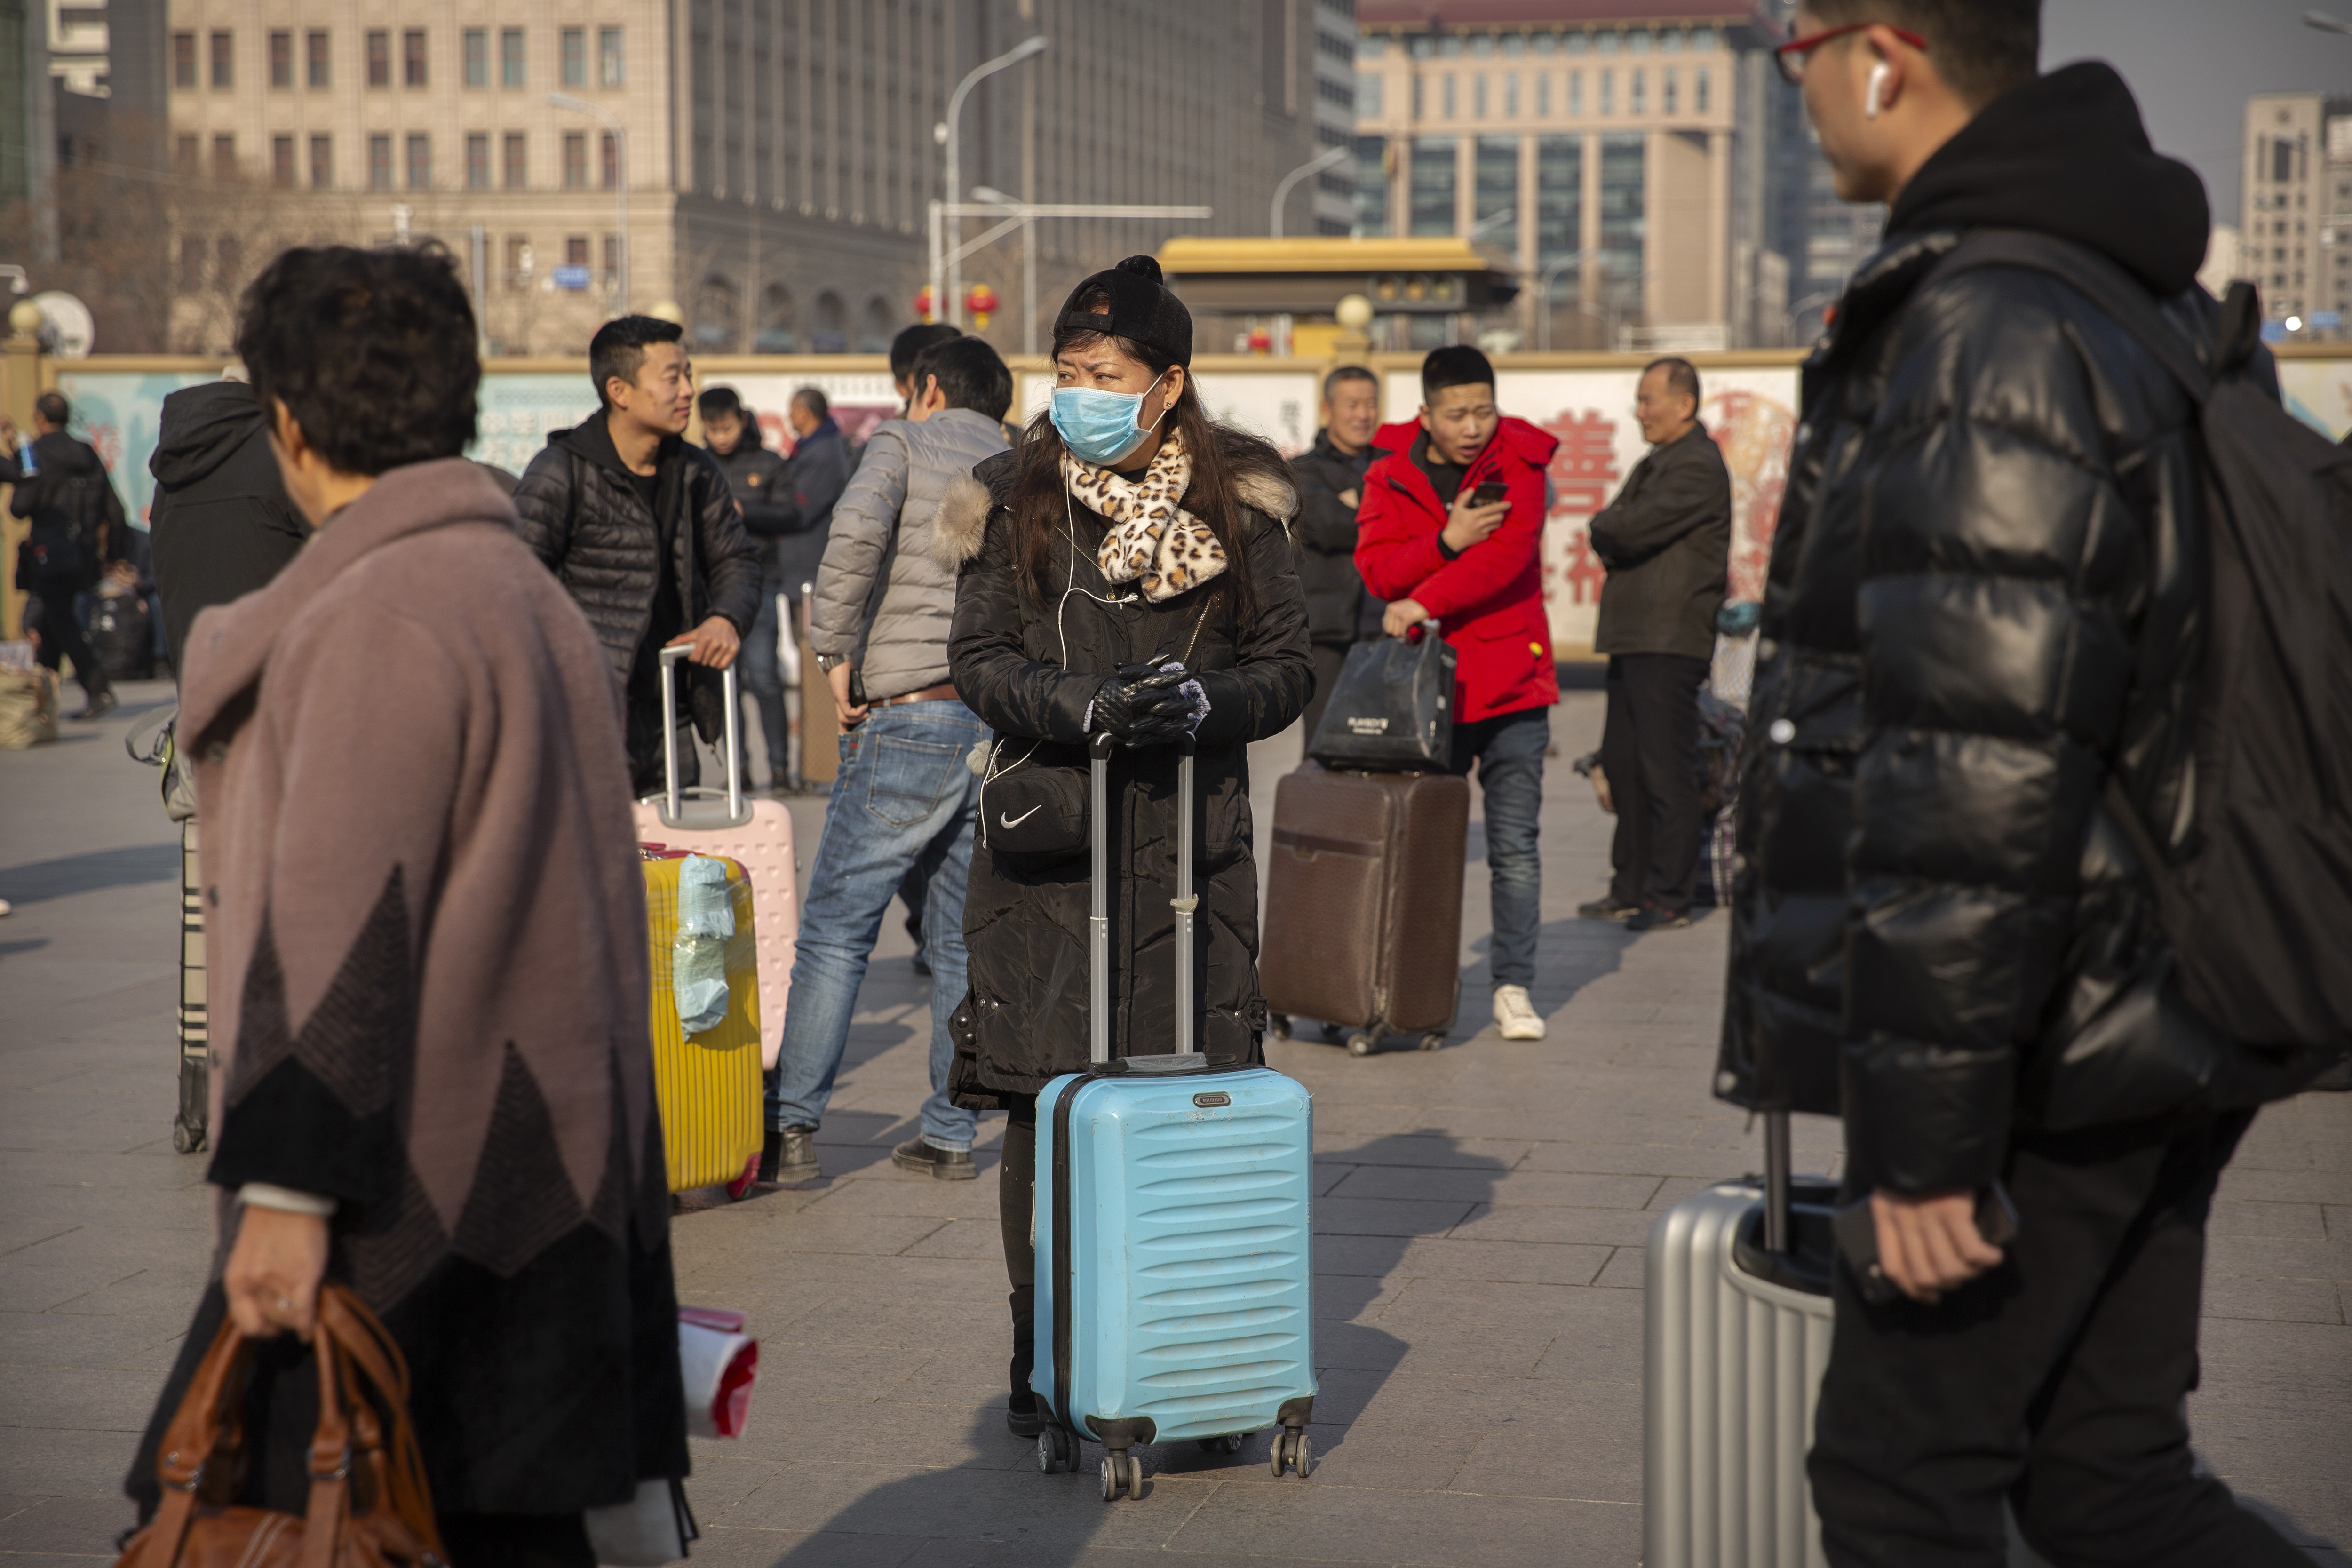 Westlake Legal Group 18dd5f1d-coronavirus_AP China counts sharp rise in coronavirus cases during country's busiest travel time, 2 in Beijing fox-news/health/infectious-disease/outbreaks fnc/health fnc e16928af-9549-5e76-a238-1996e99e205b Associated Press article